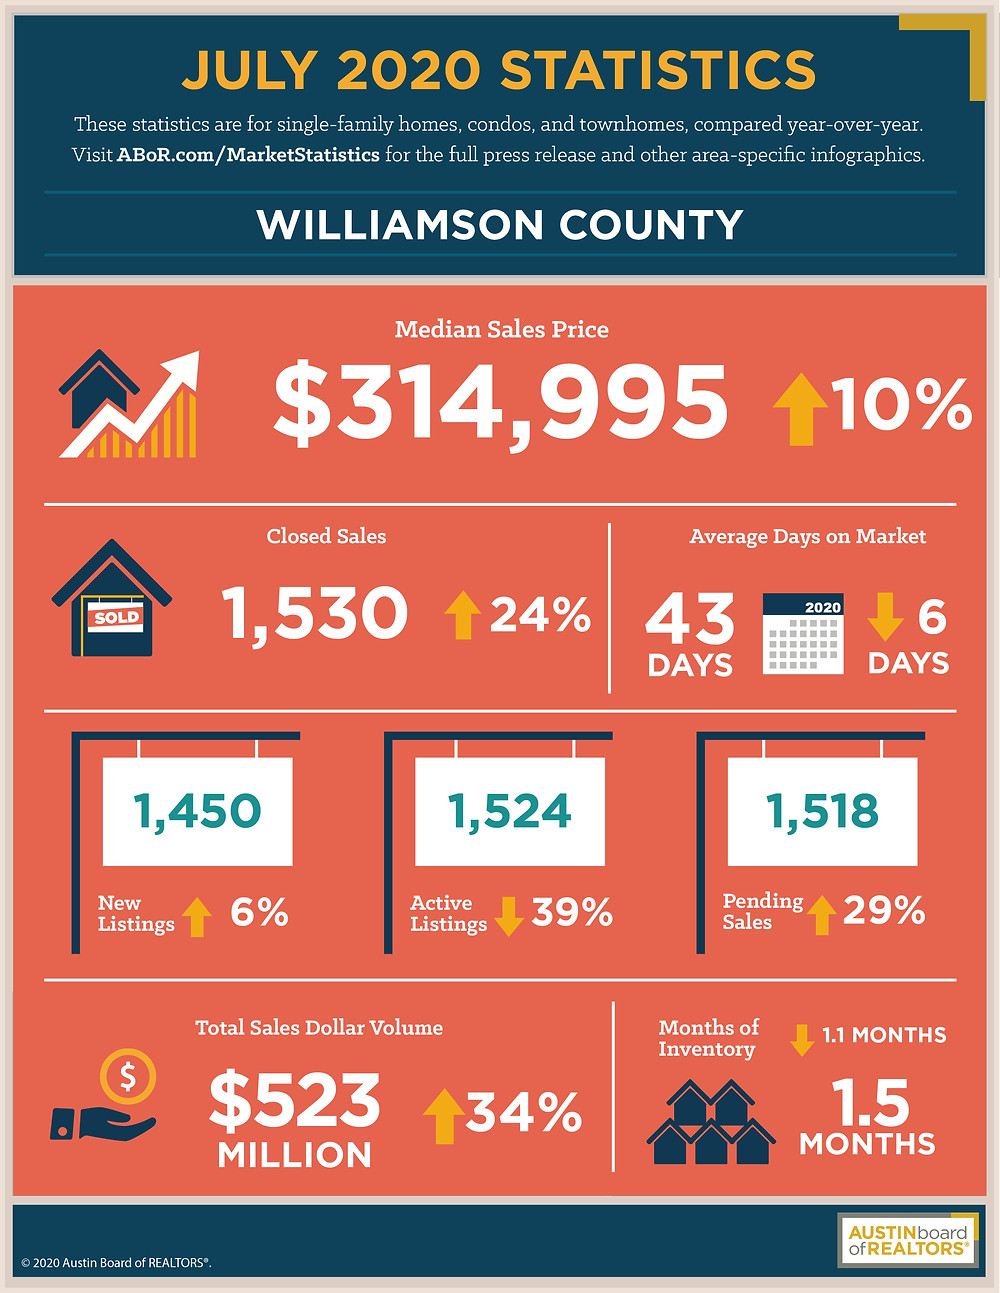 July 2020 Housing Statistics For Williamson County